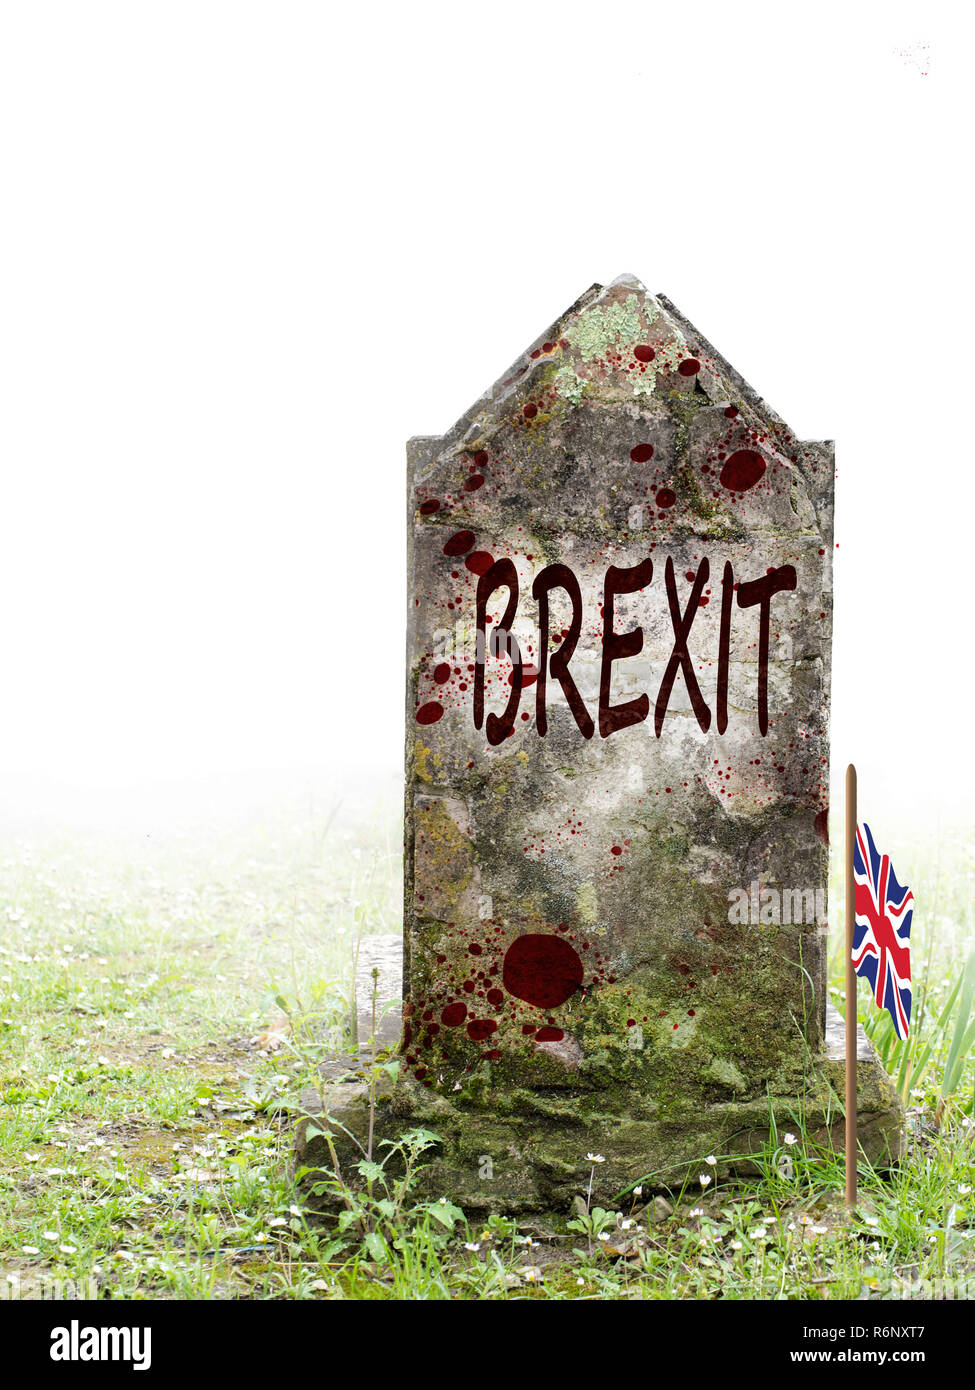 Brexit dead, UK politics. Ancient gravestone in fog, with blood and bedraggled flag. - Stock Image